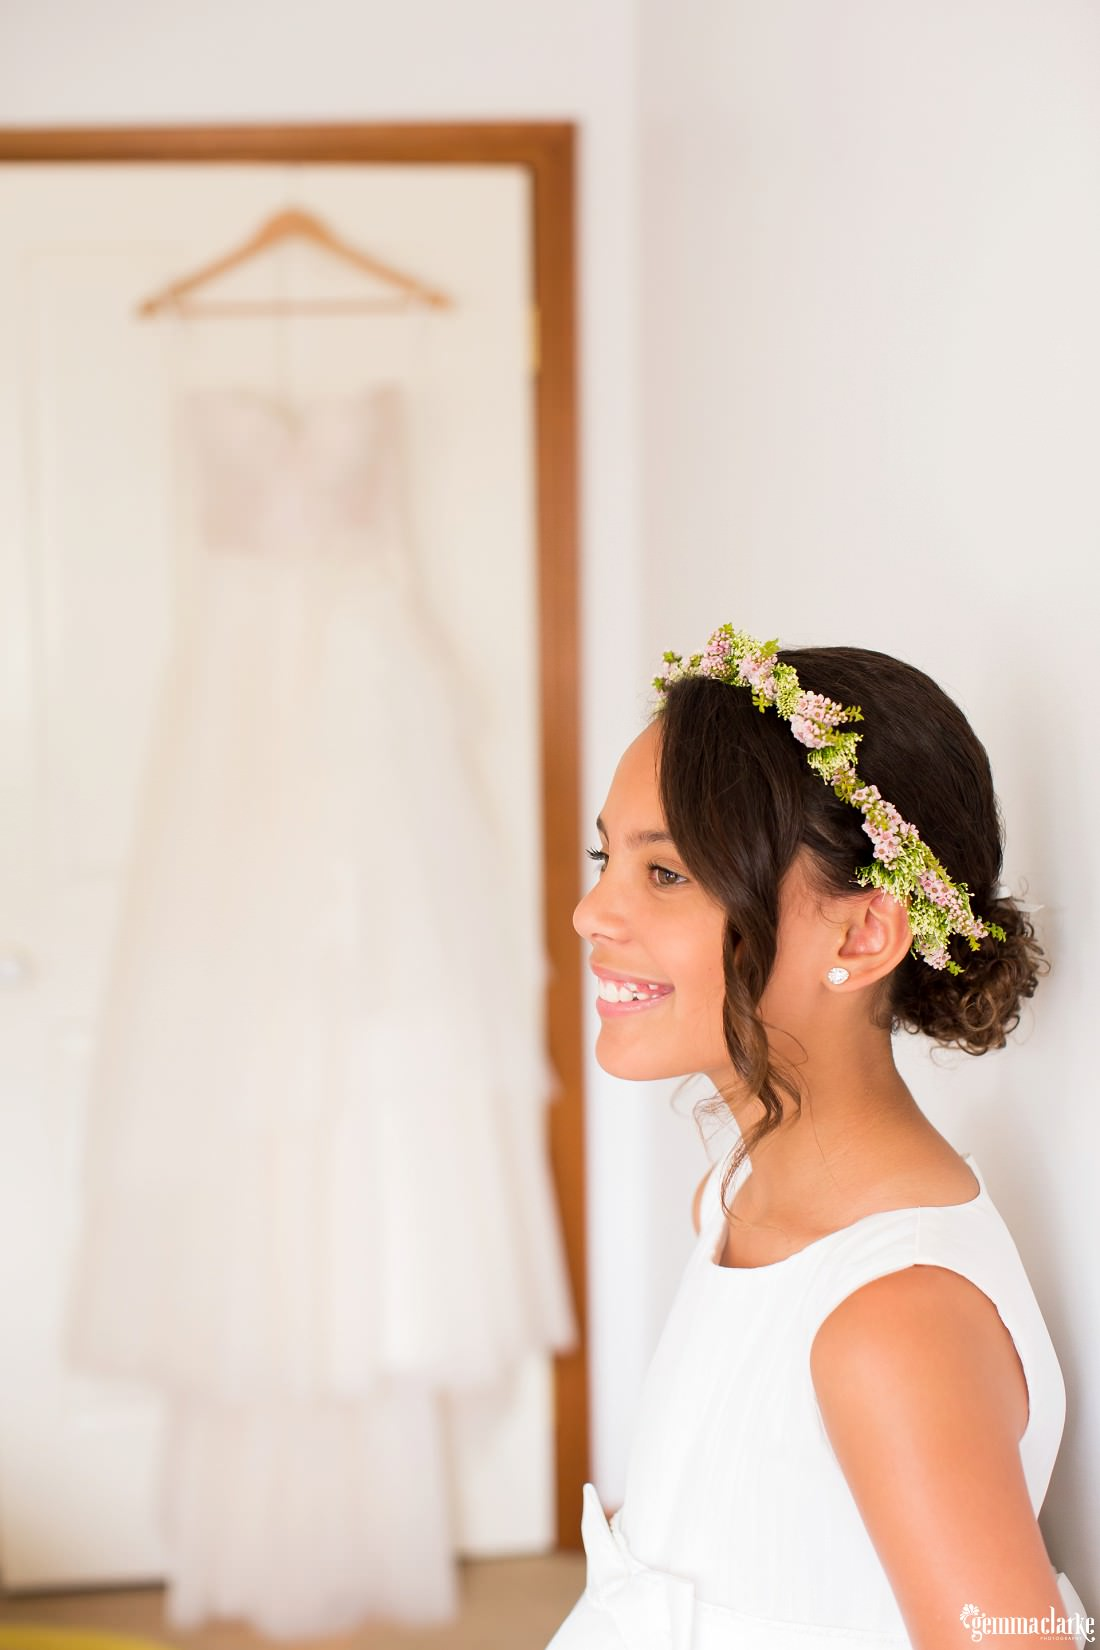 A smiling junior bridesmaid in white dress and floral crown